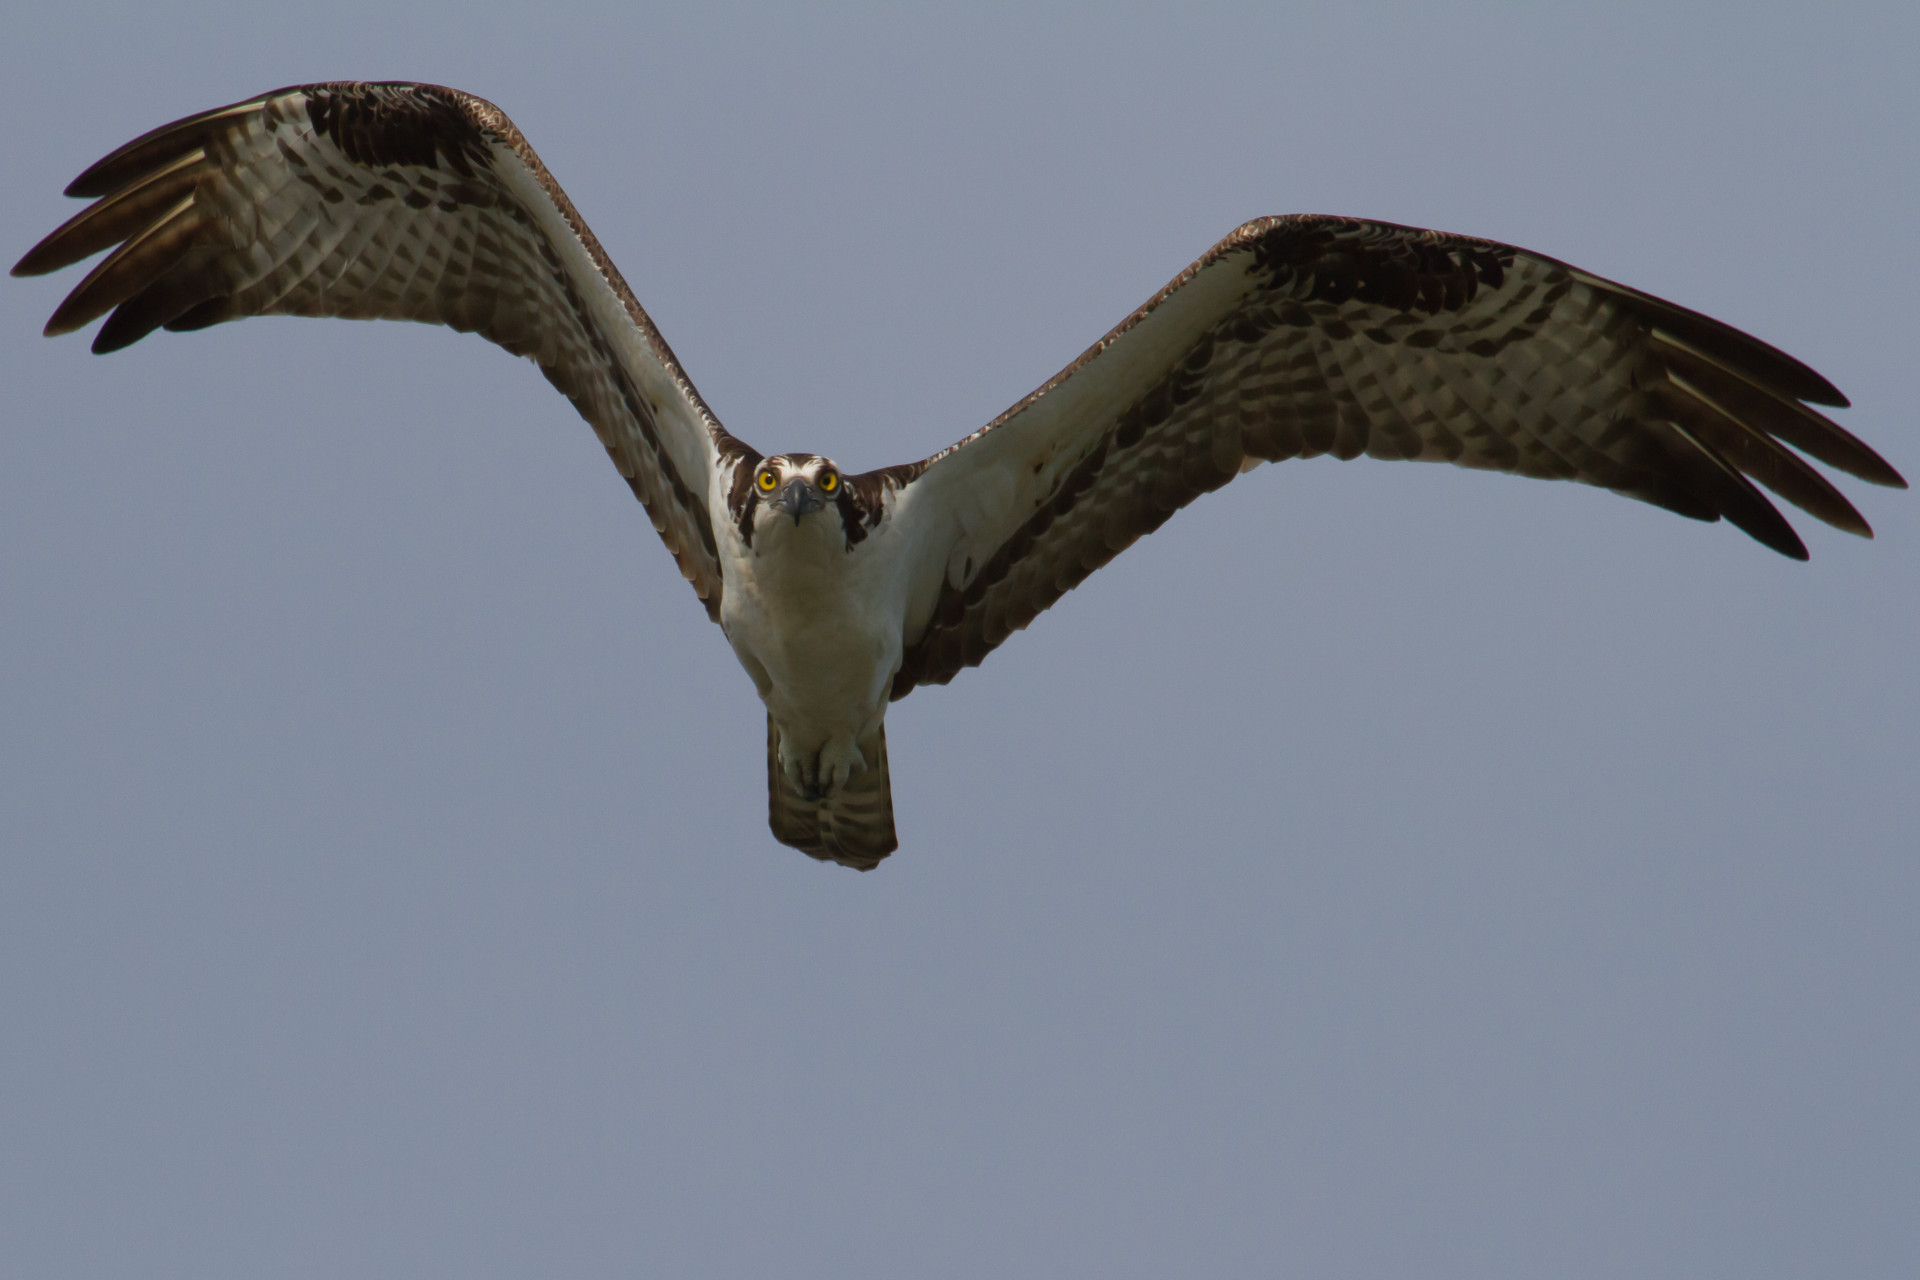 Osprey, Celery Fields. The Osprey is one of the most common birds in Florida